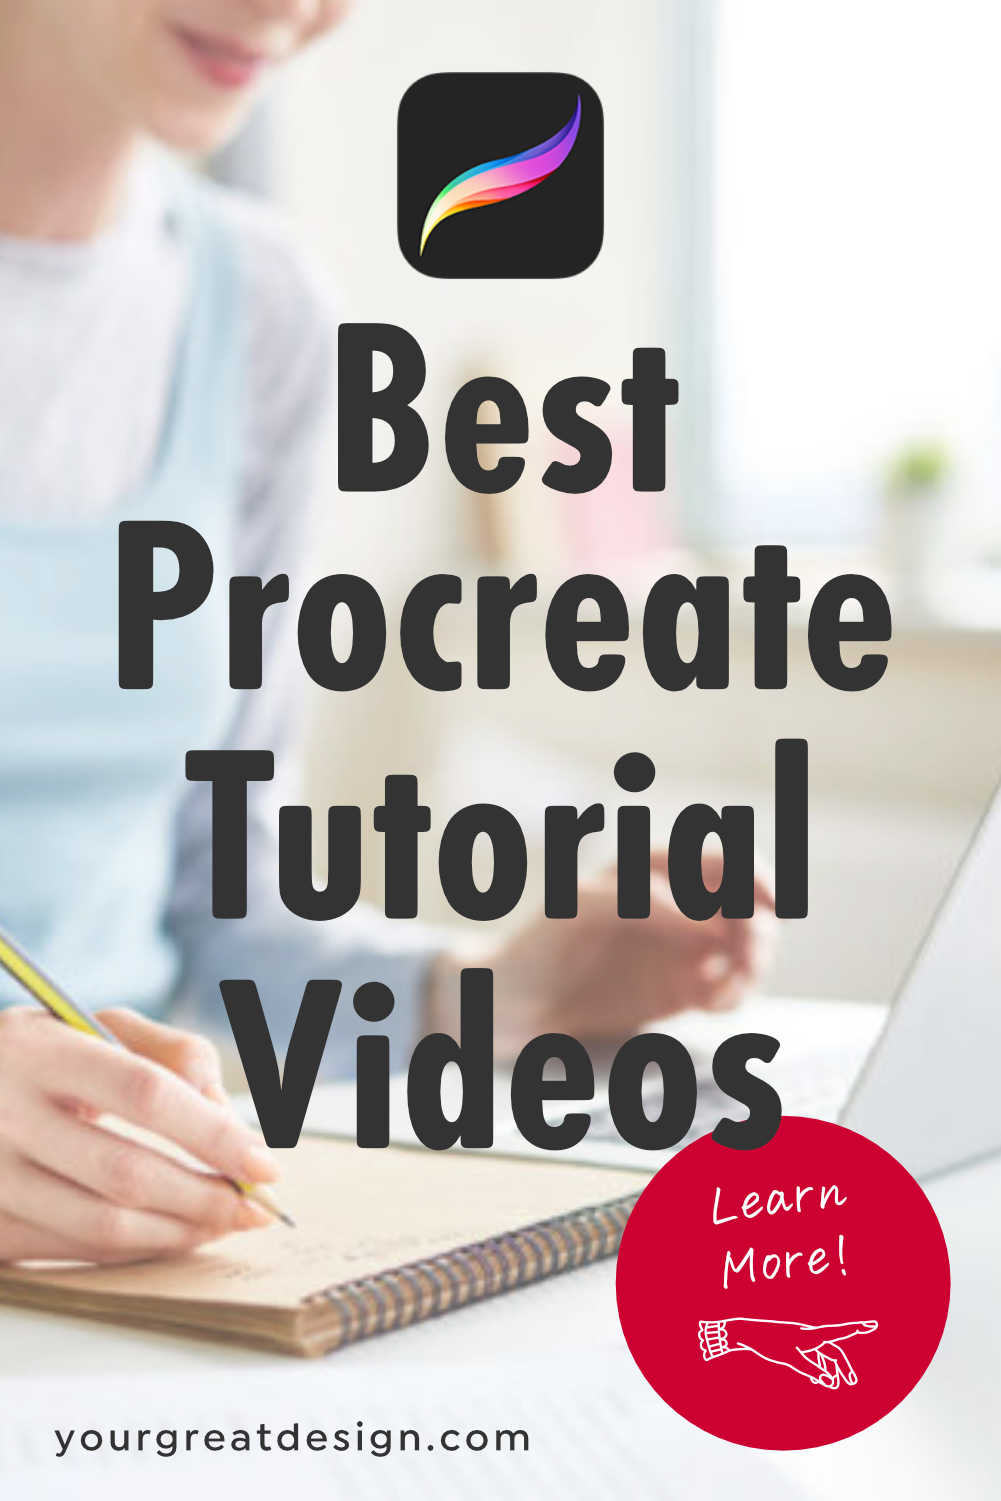 Easy with videos! Easy to understand Procreate Tutorial